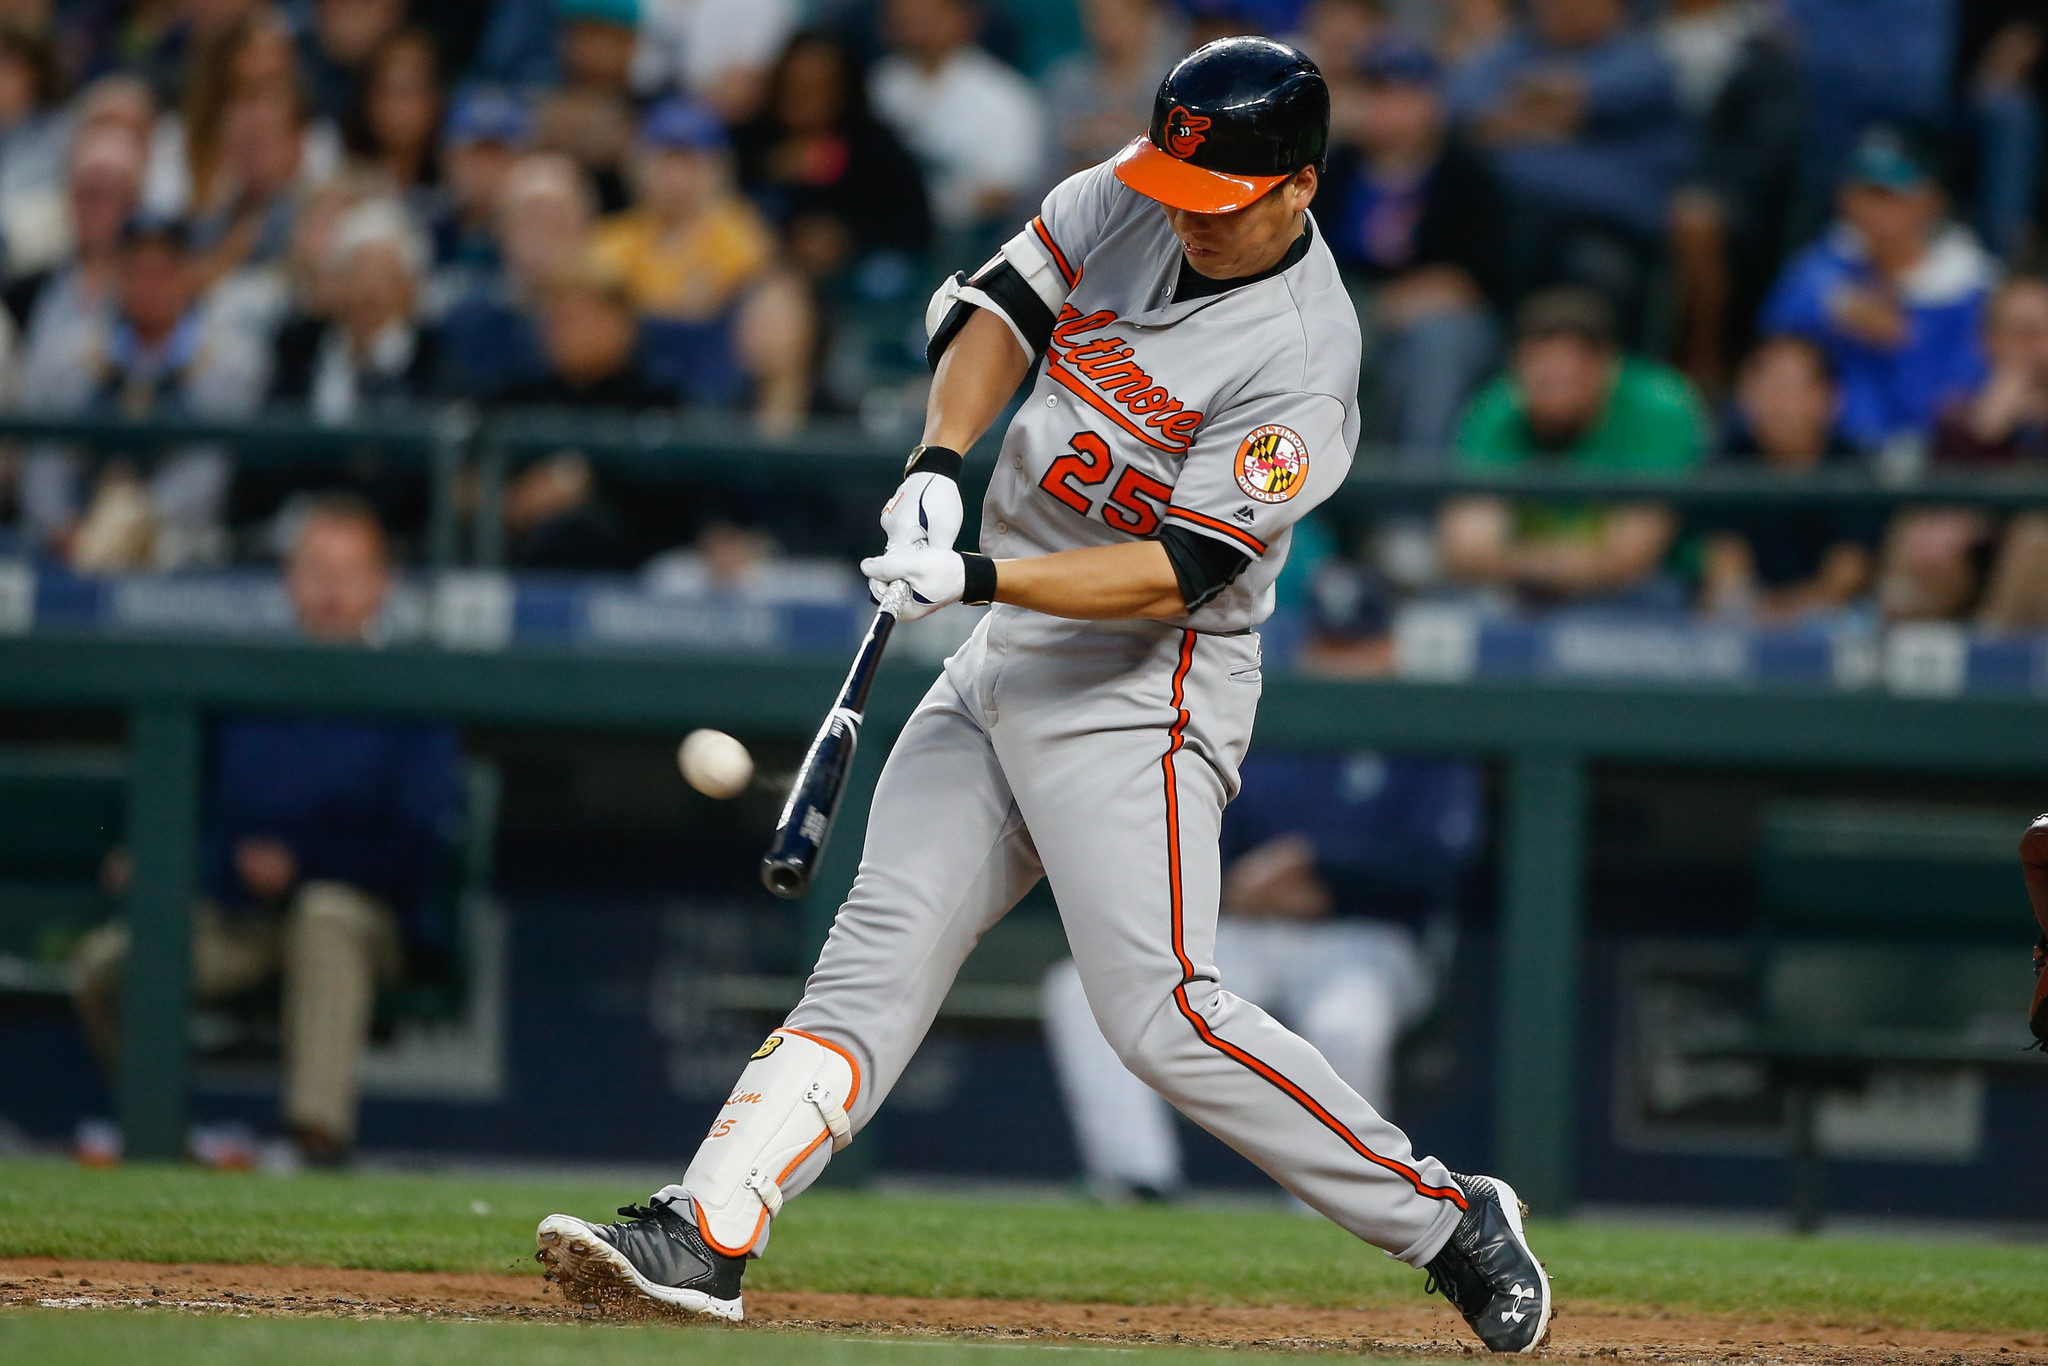 Bal-orioles-set-june-home-run-record-with-hyun-soo-kim-s-seventh-inning-home-run-in-seattle-20160630